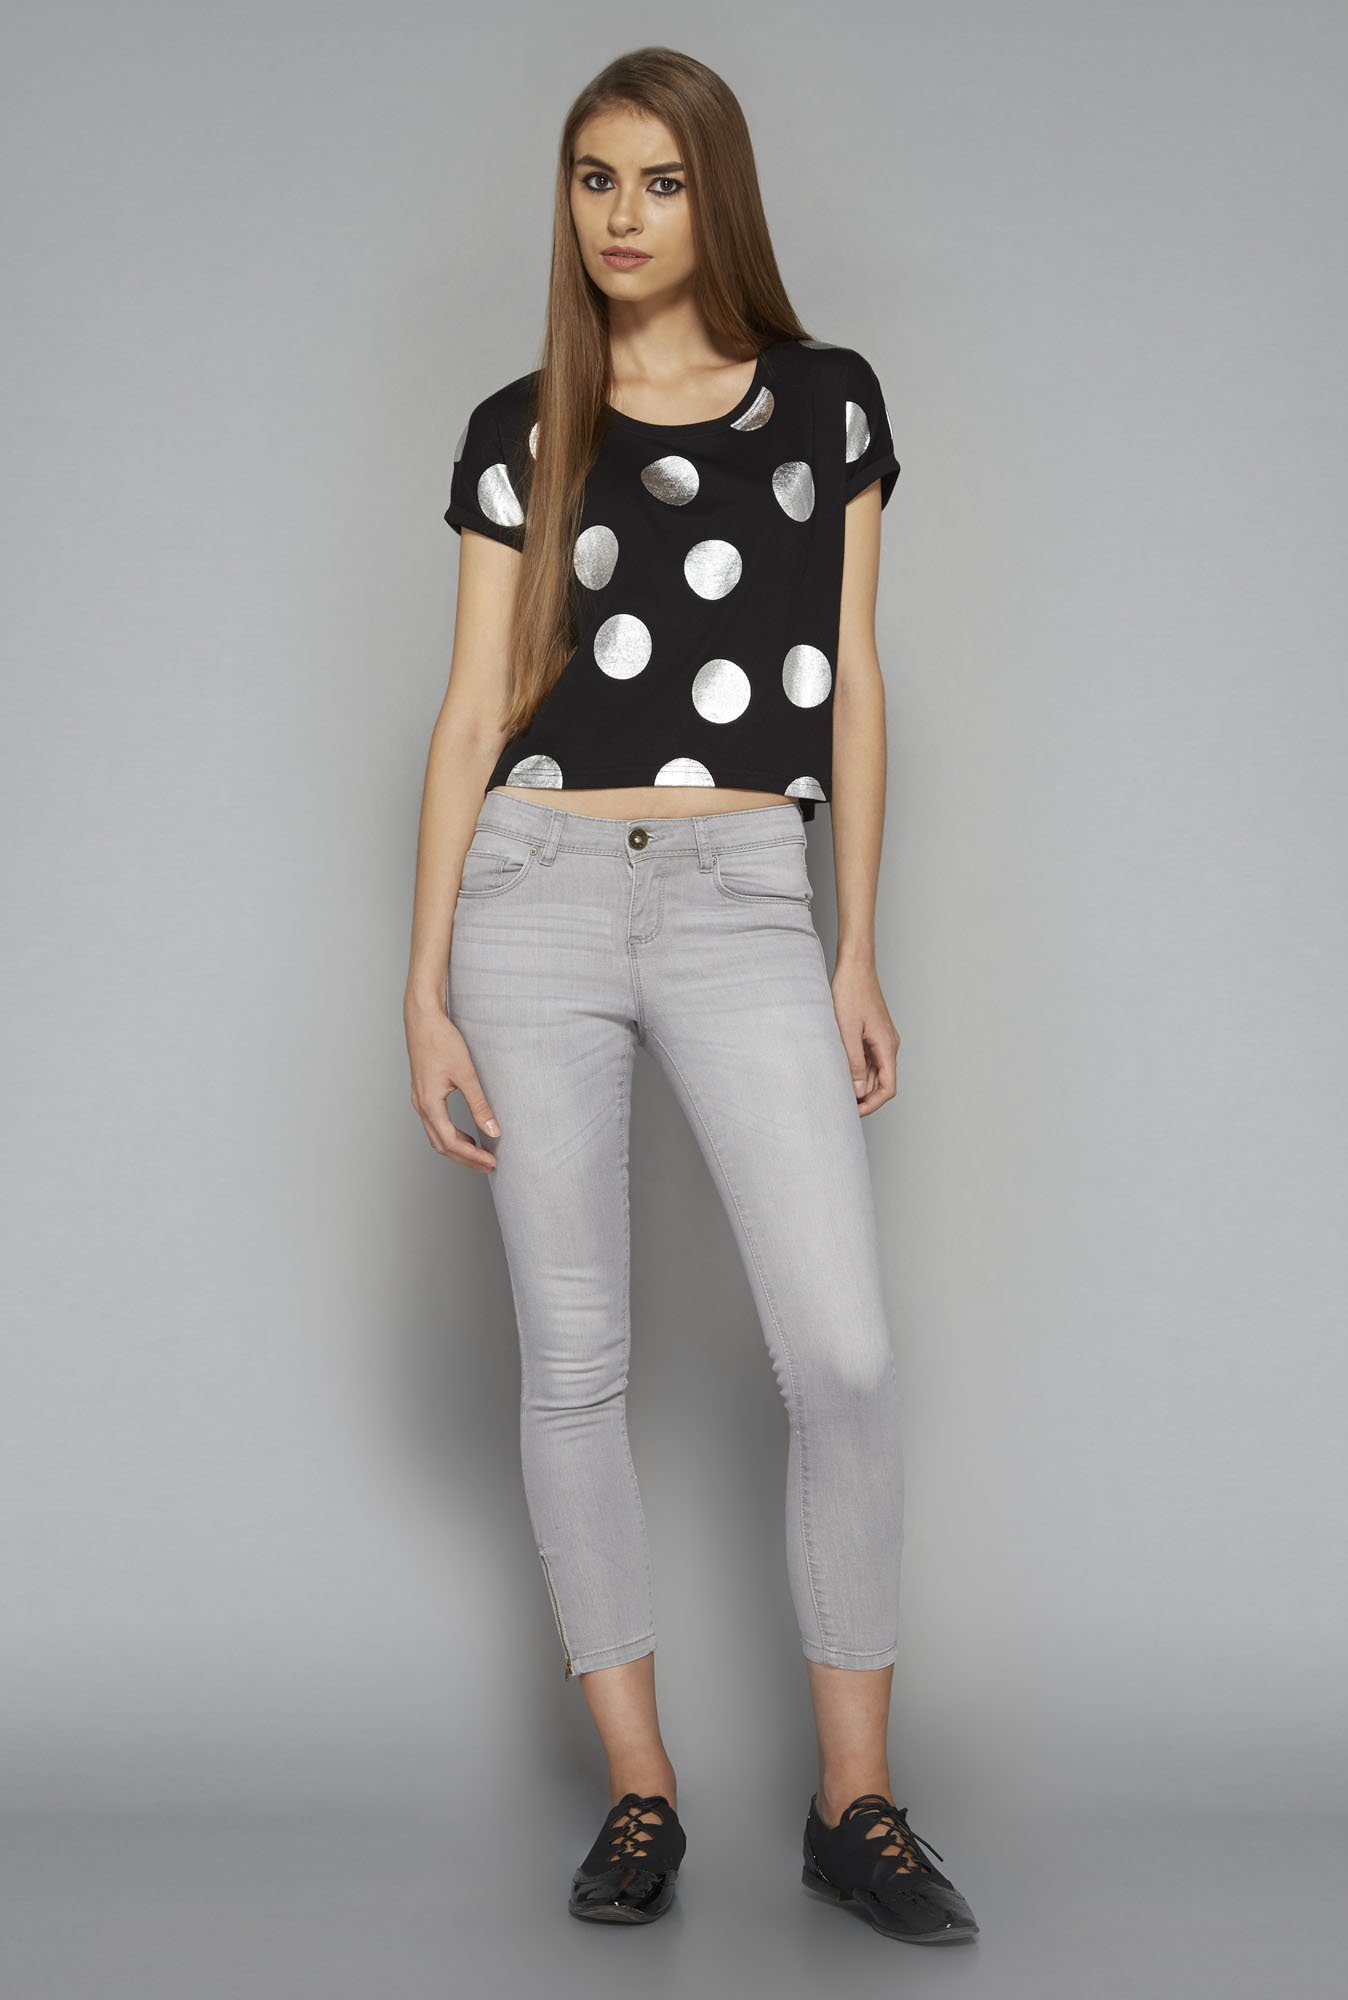 Nuon by Westside Black Polka Dot T Shirt